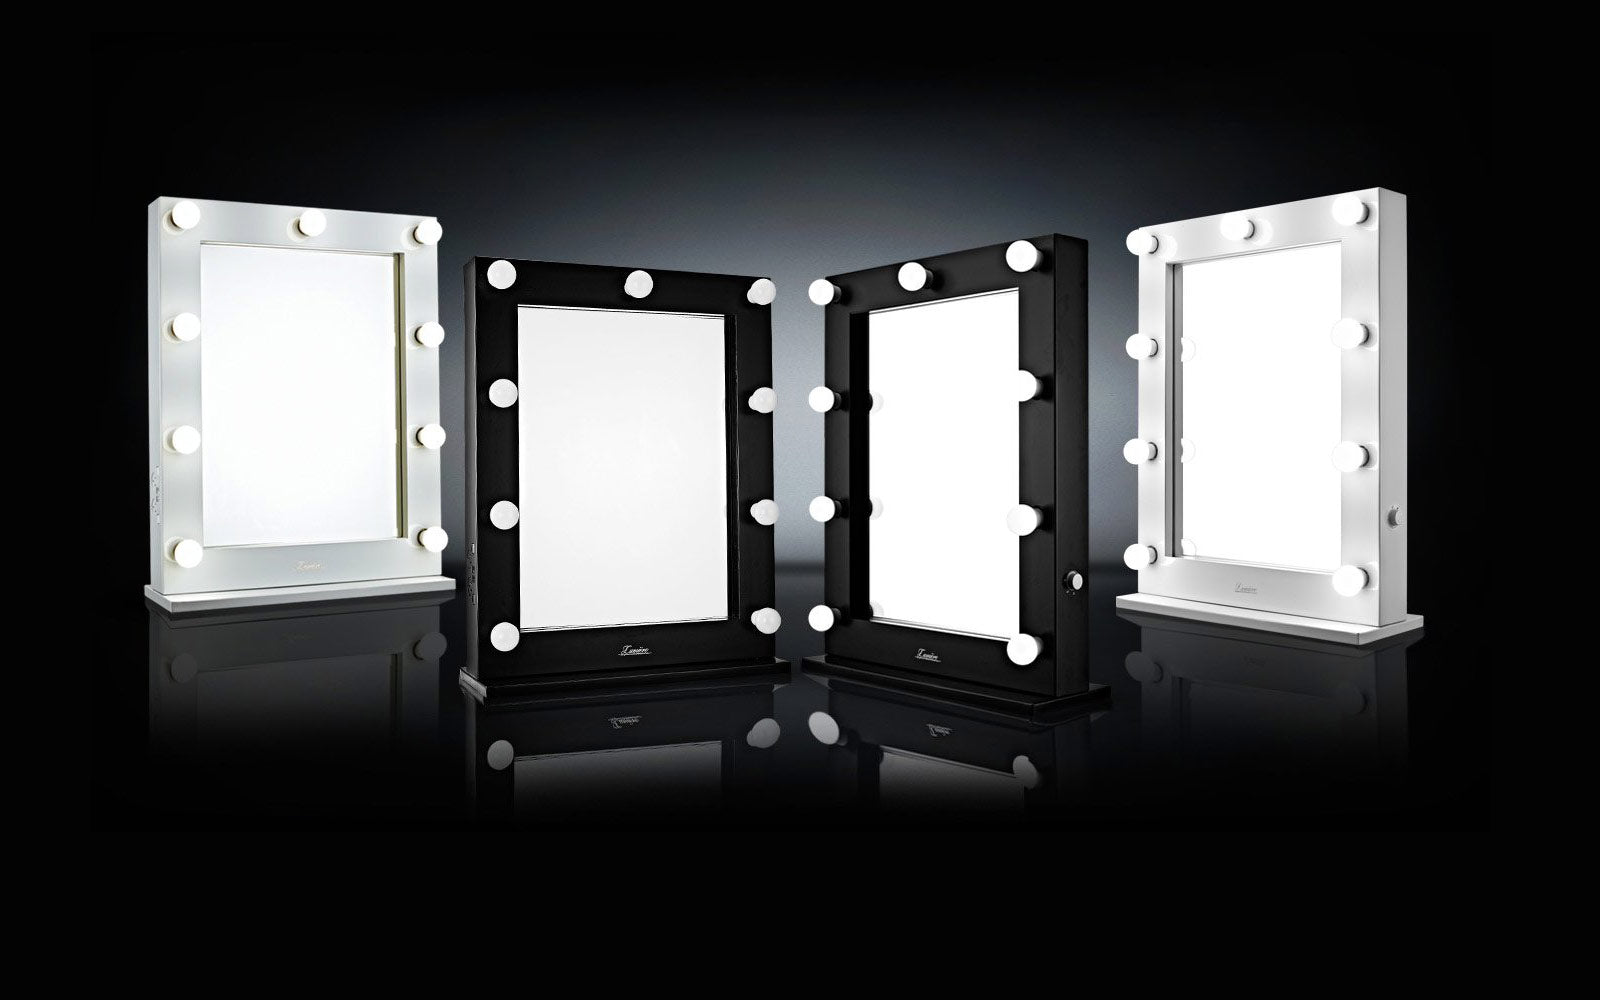 Lighted Makeup Mirrors Illuminated Hollywood Vanity Australia Fluro Light Wiring Diagram Perfect Starts With Lighting